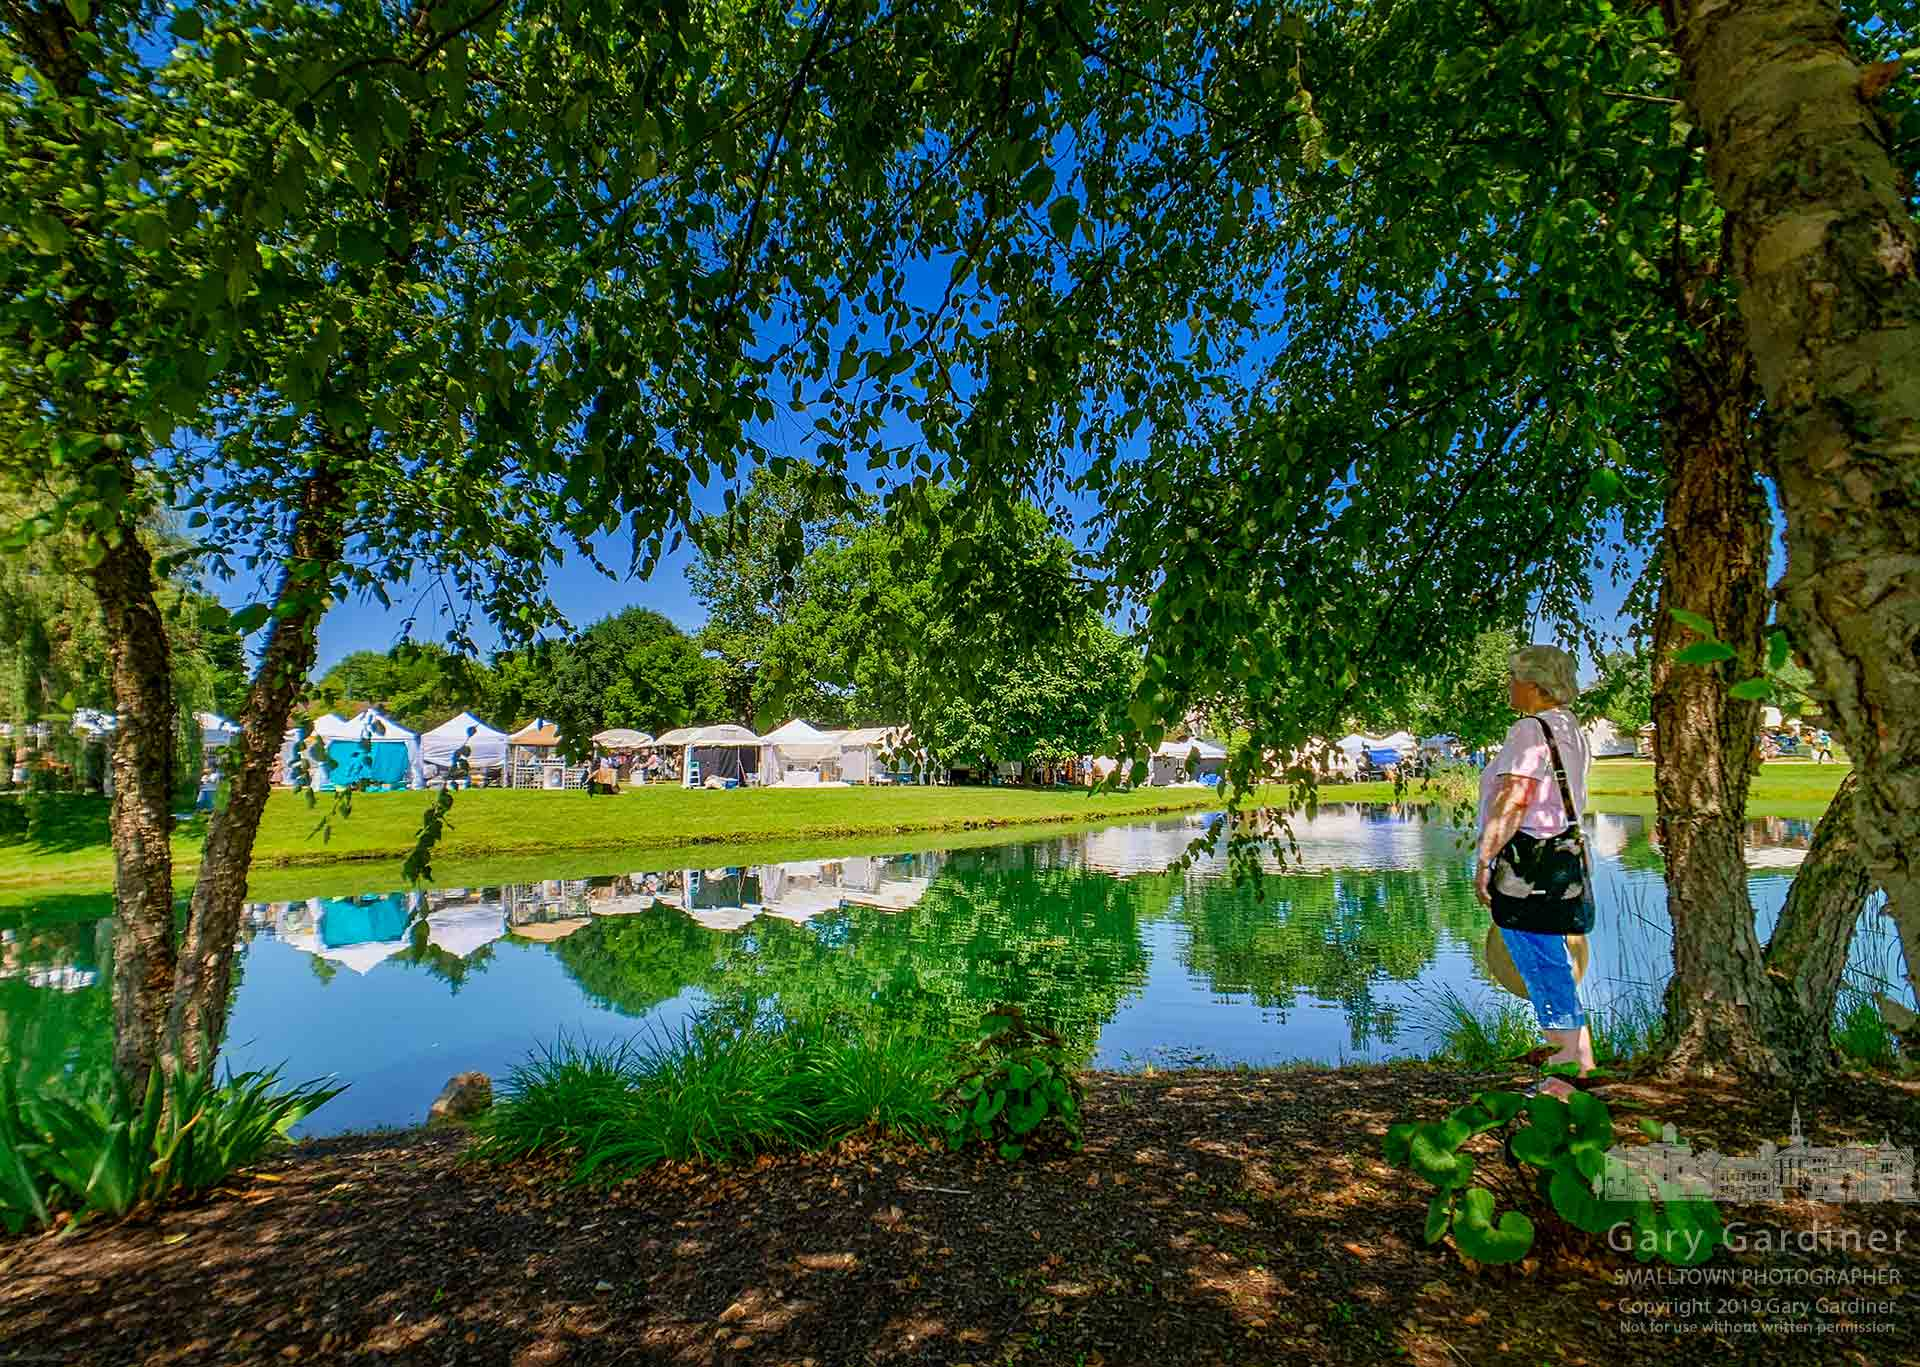 A few of the artist's tents at the Westervlle Music & Arts Festival are reflected in the main pond as the two-day festival opened Saturday morning at Heritage Park. My Final Photo for July 13, 2019.